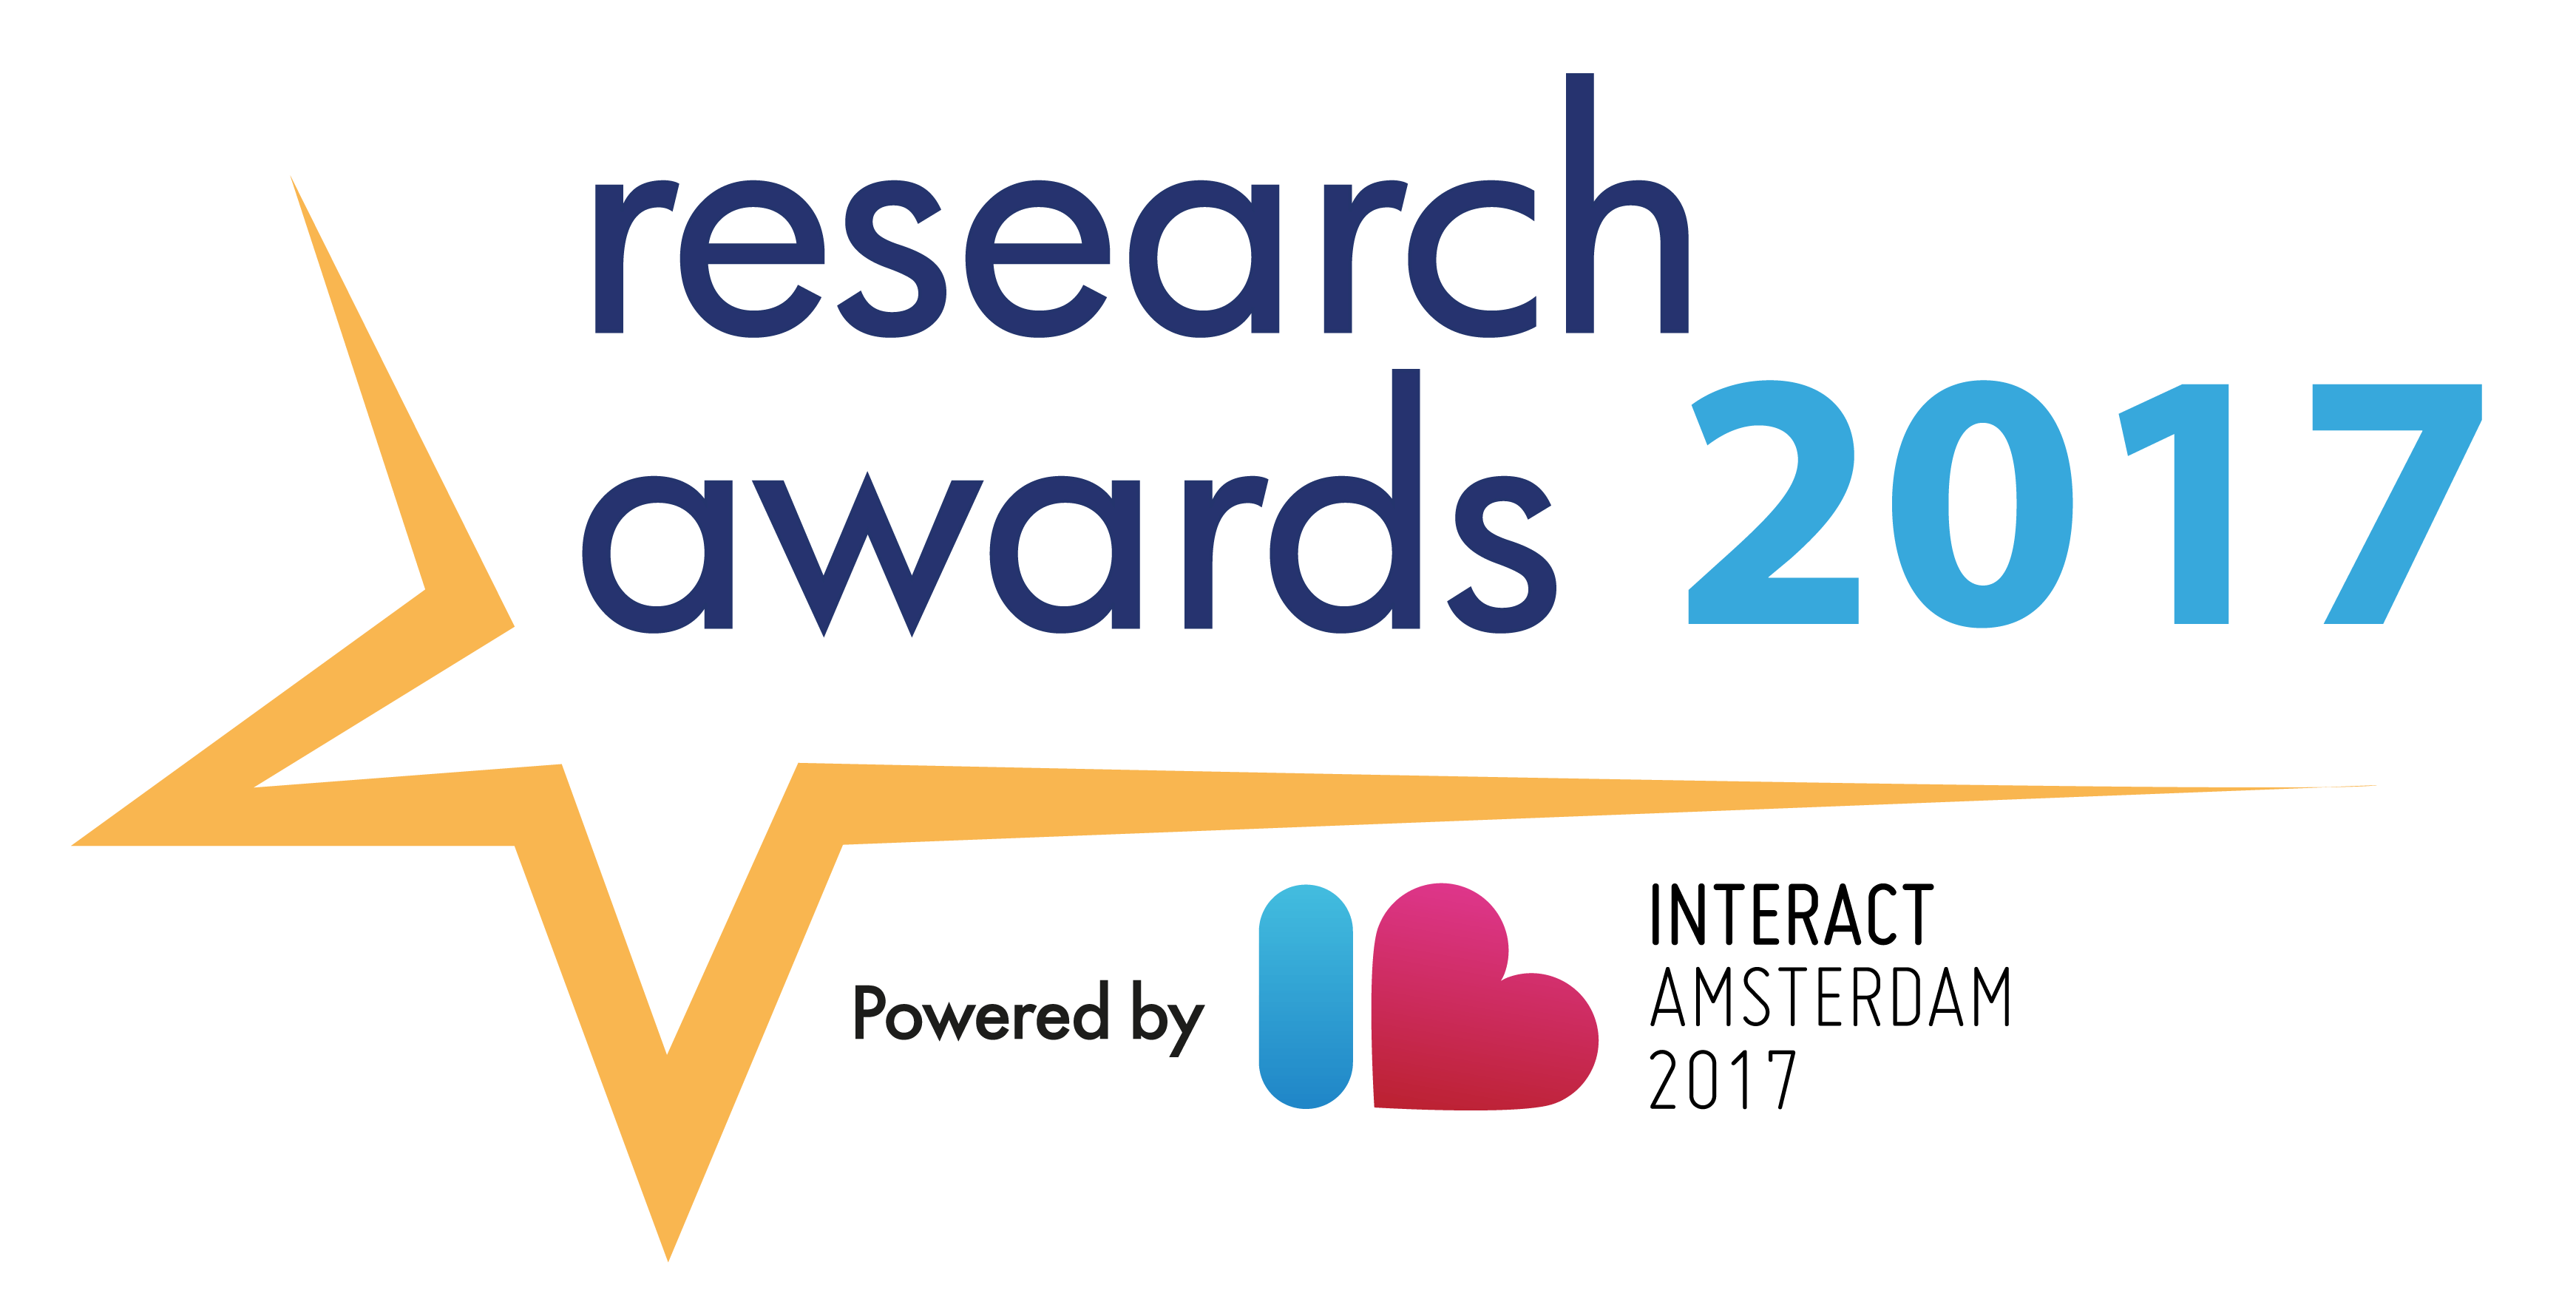 research-awards-2017-color